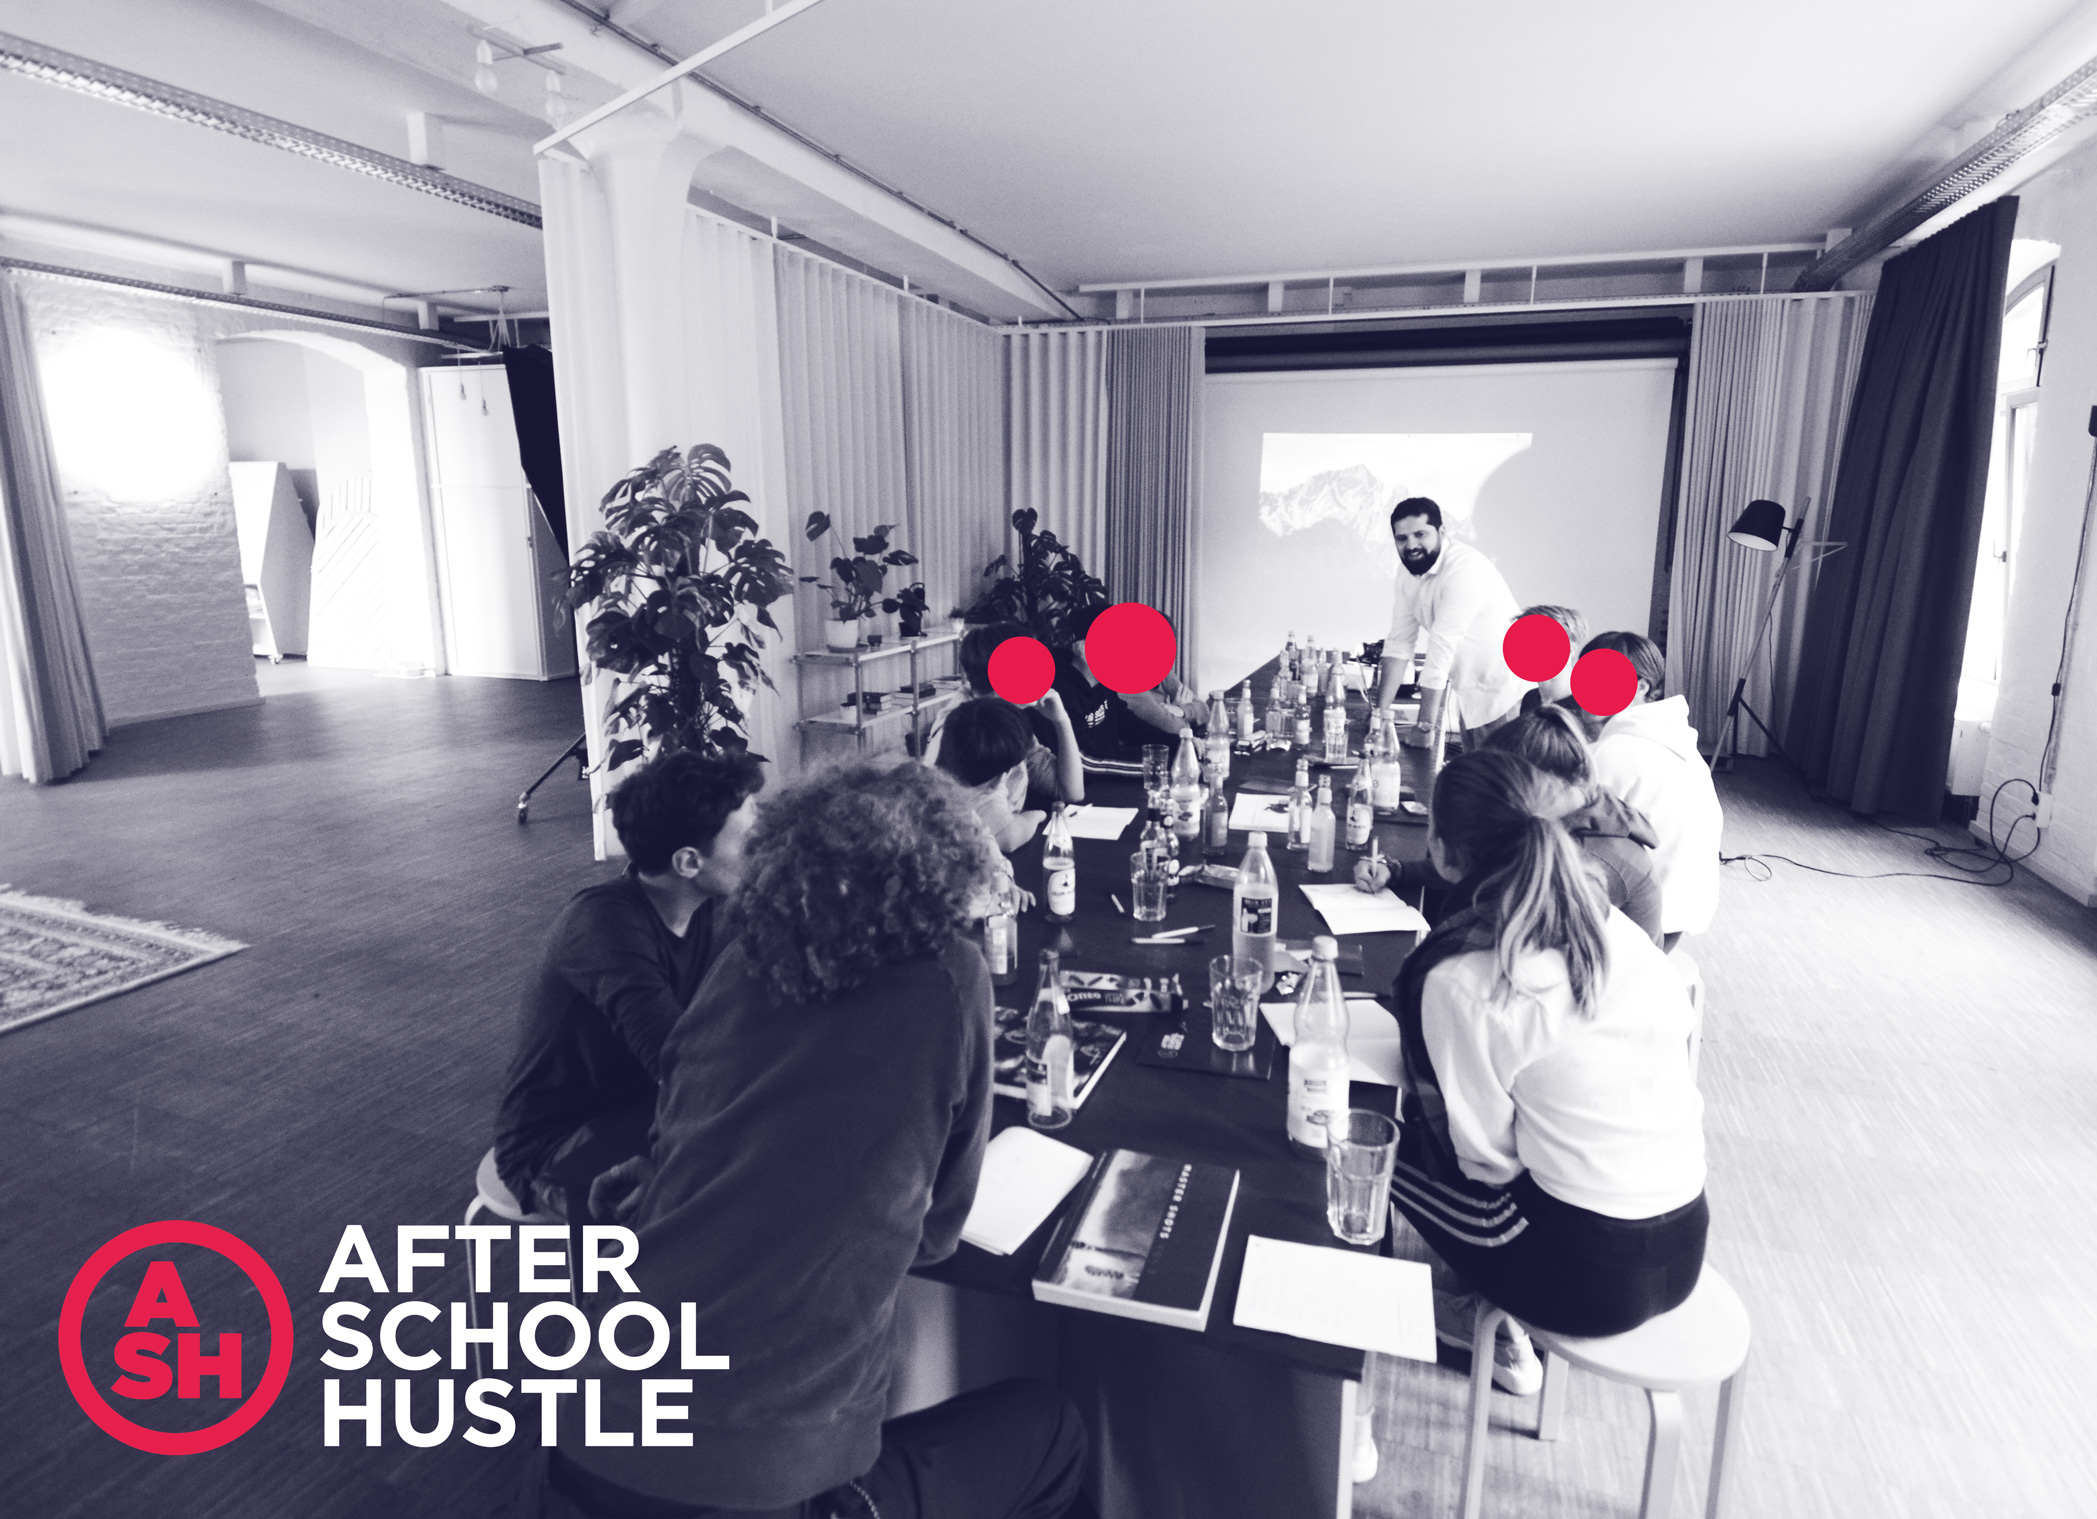 A workshop at After School Hustle.